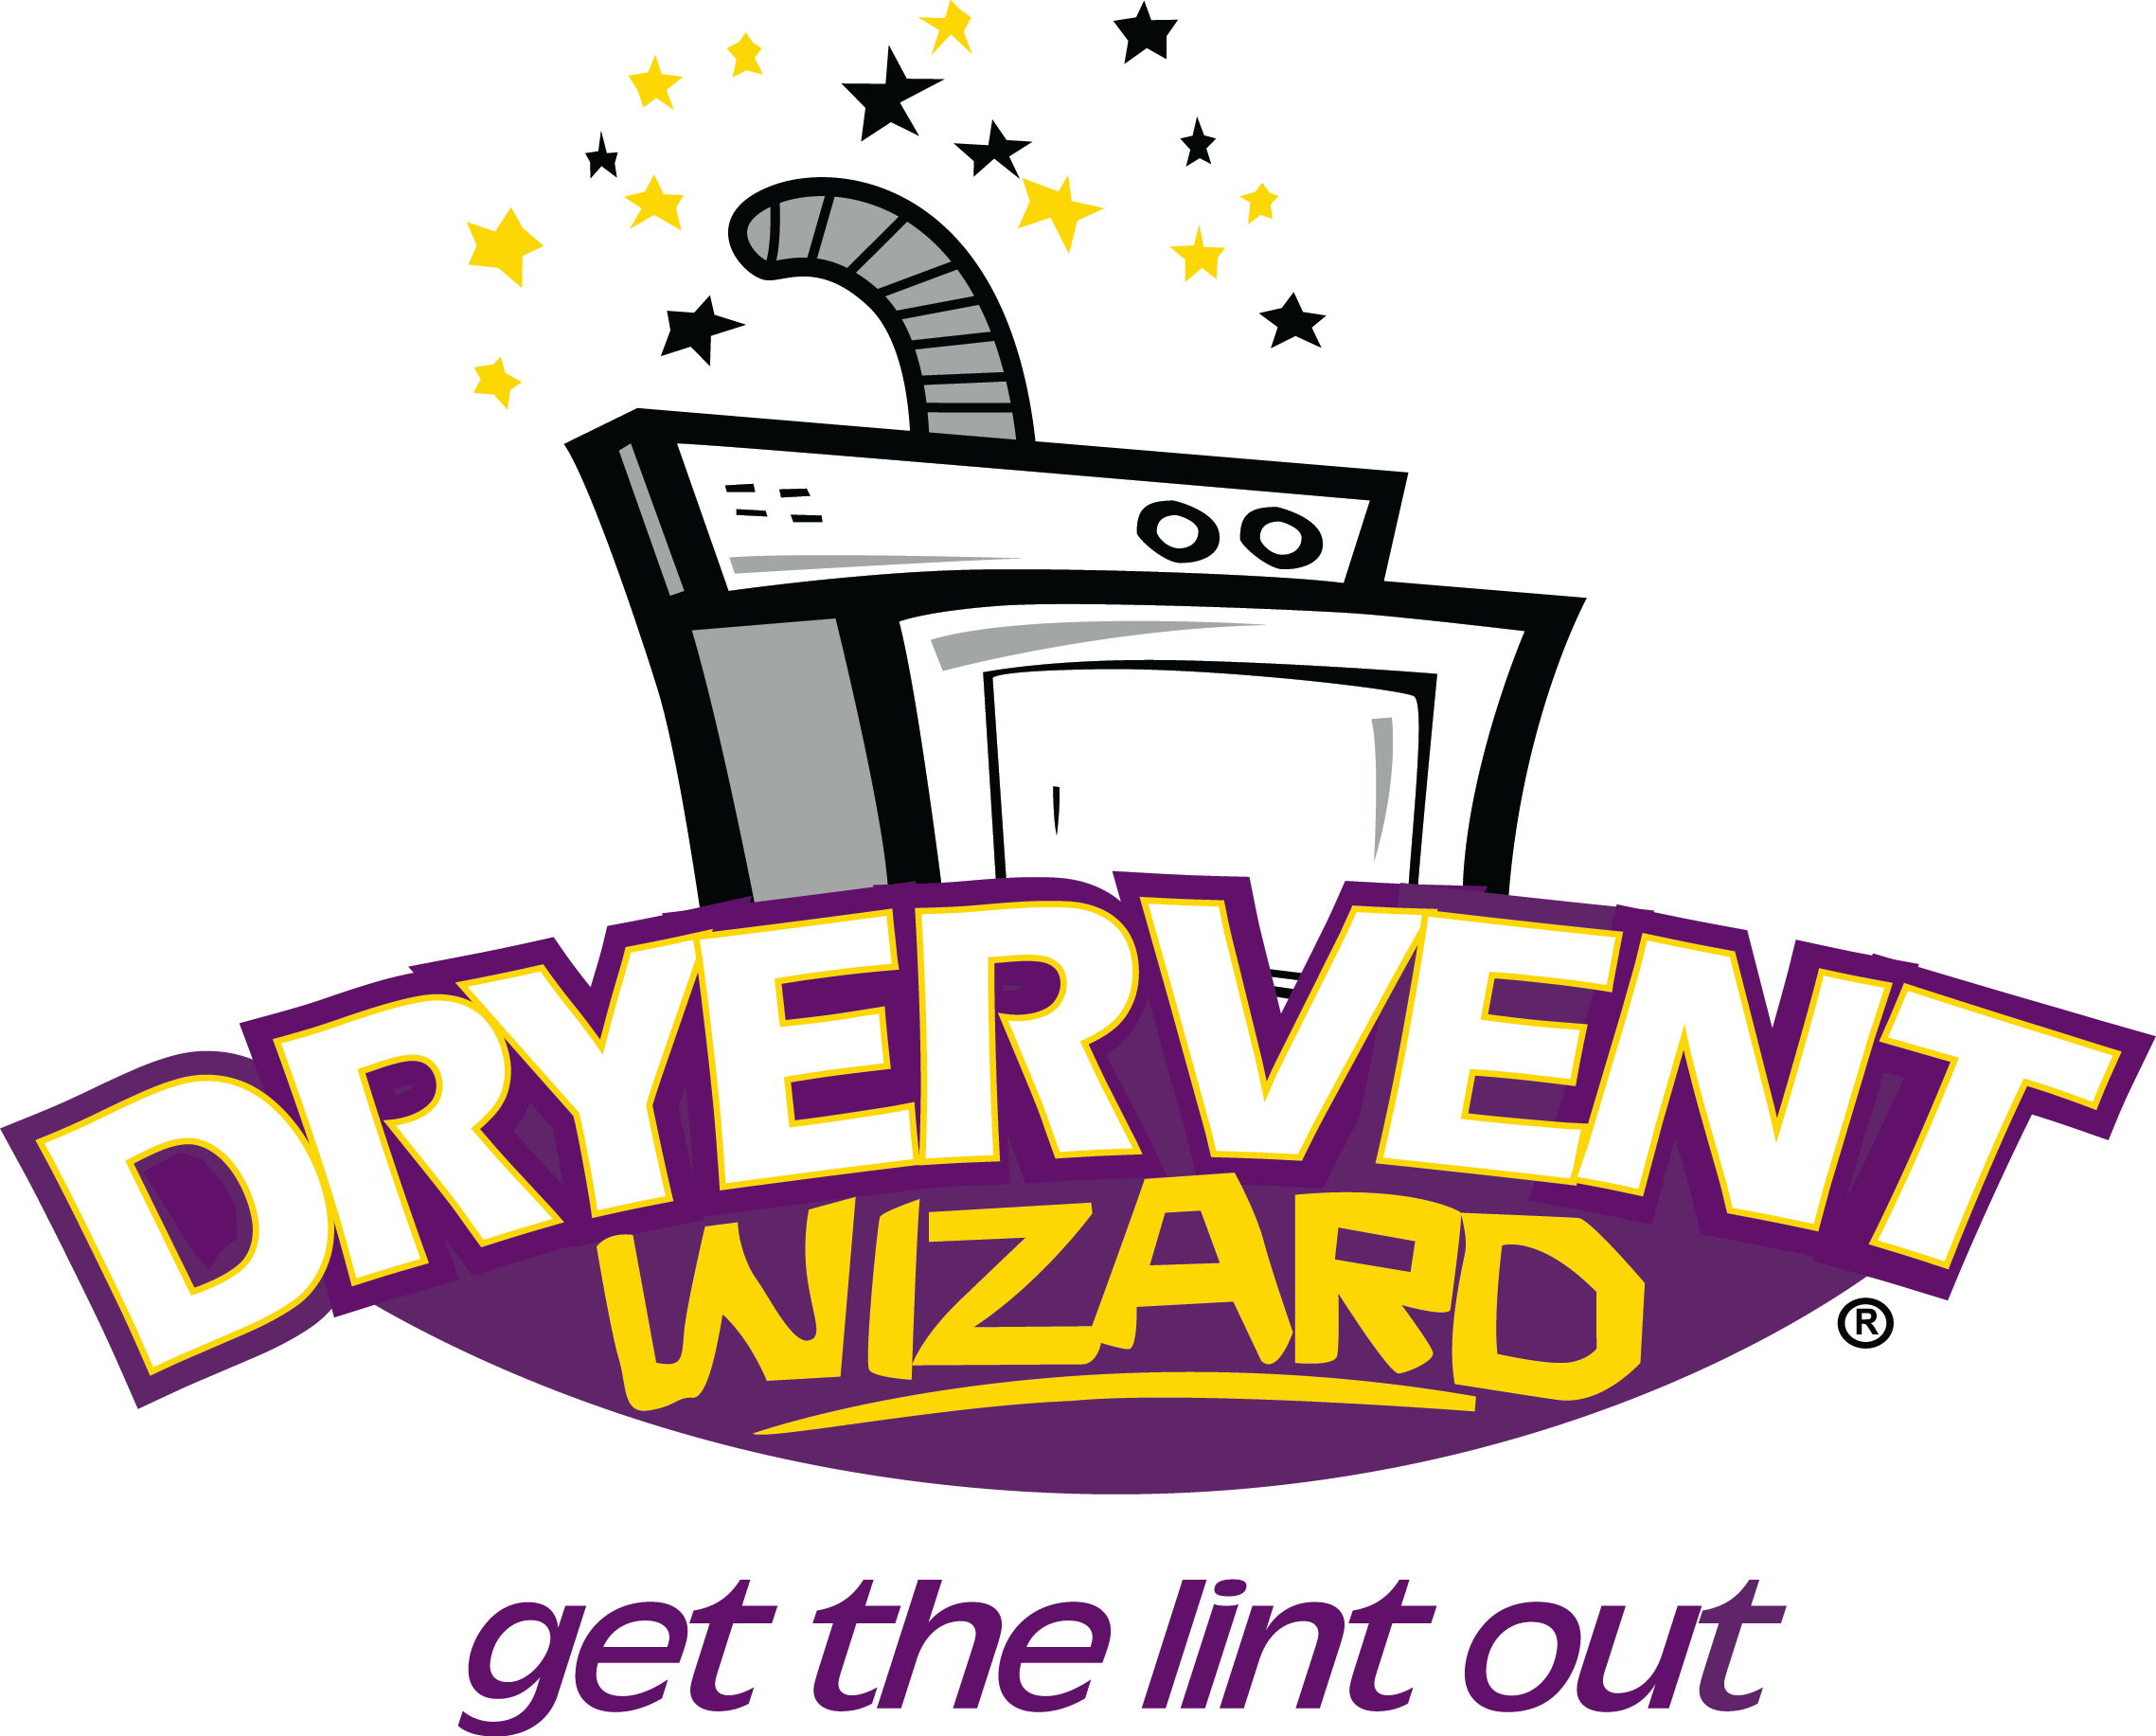 Dryervent Wizard